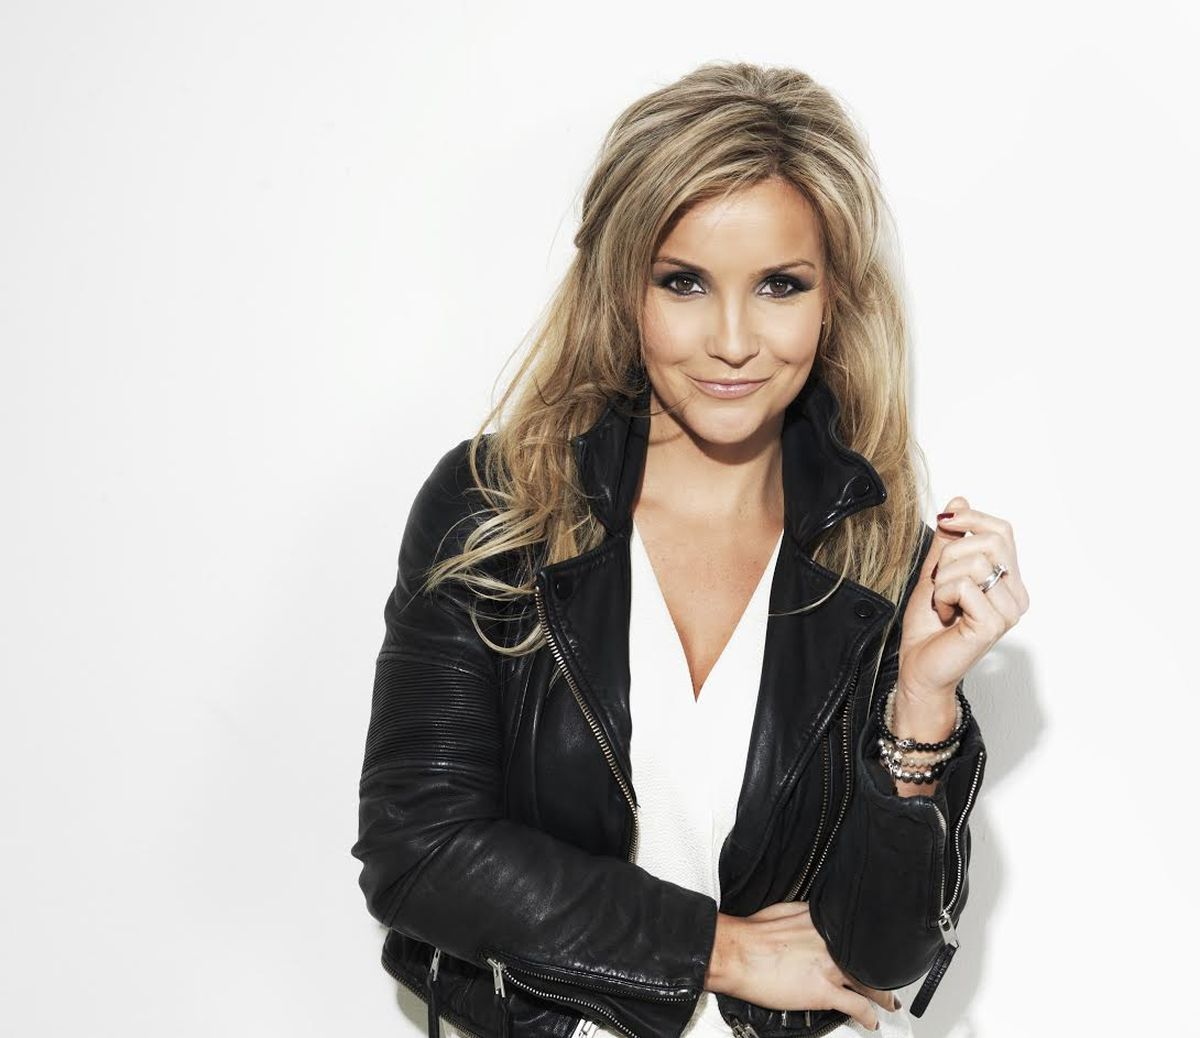 TV presenter Helen Skelton has asigned up as an ambassador for British Lion eggs